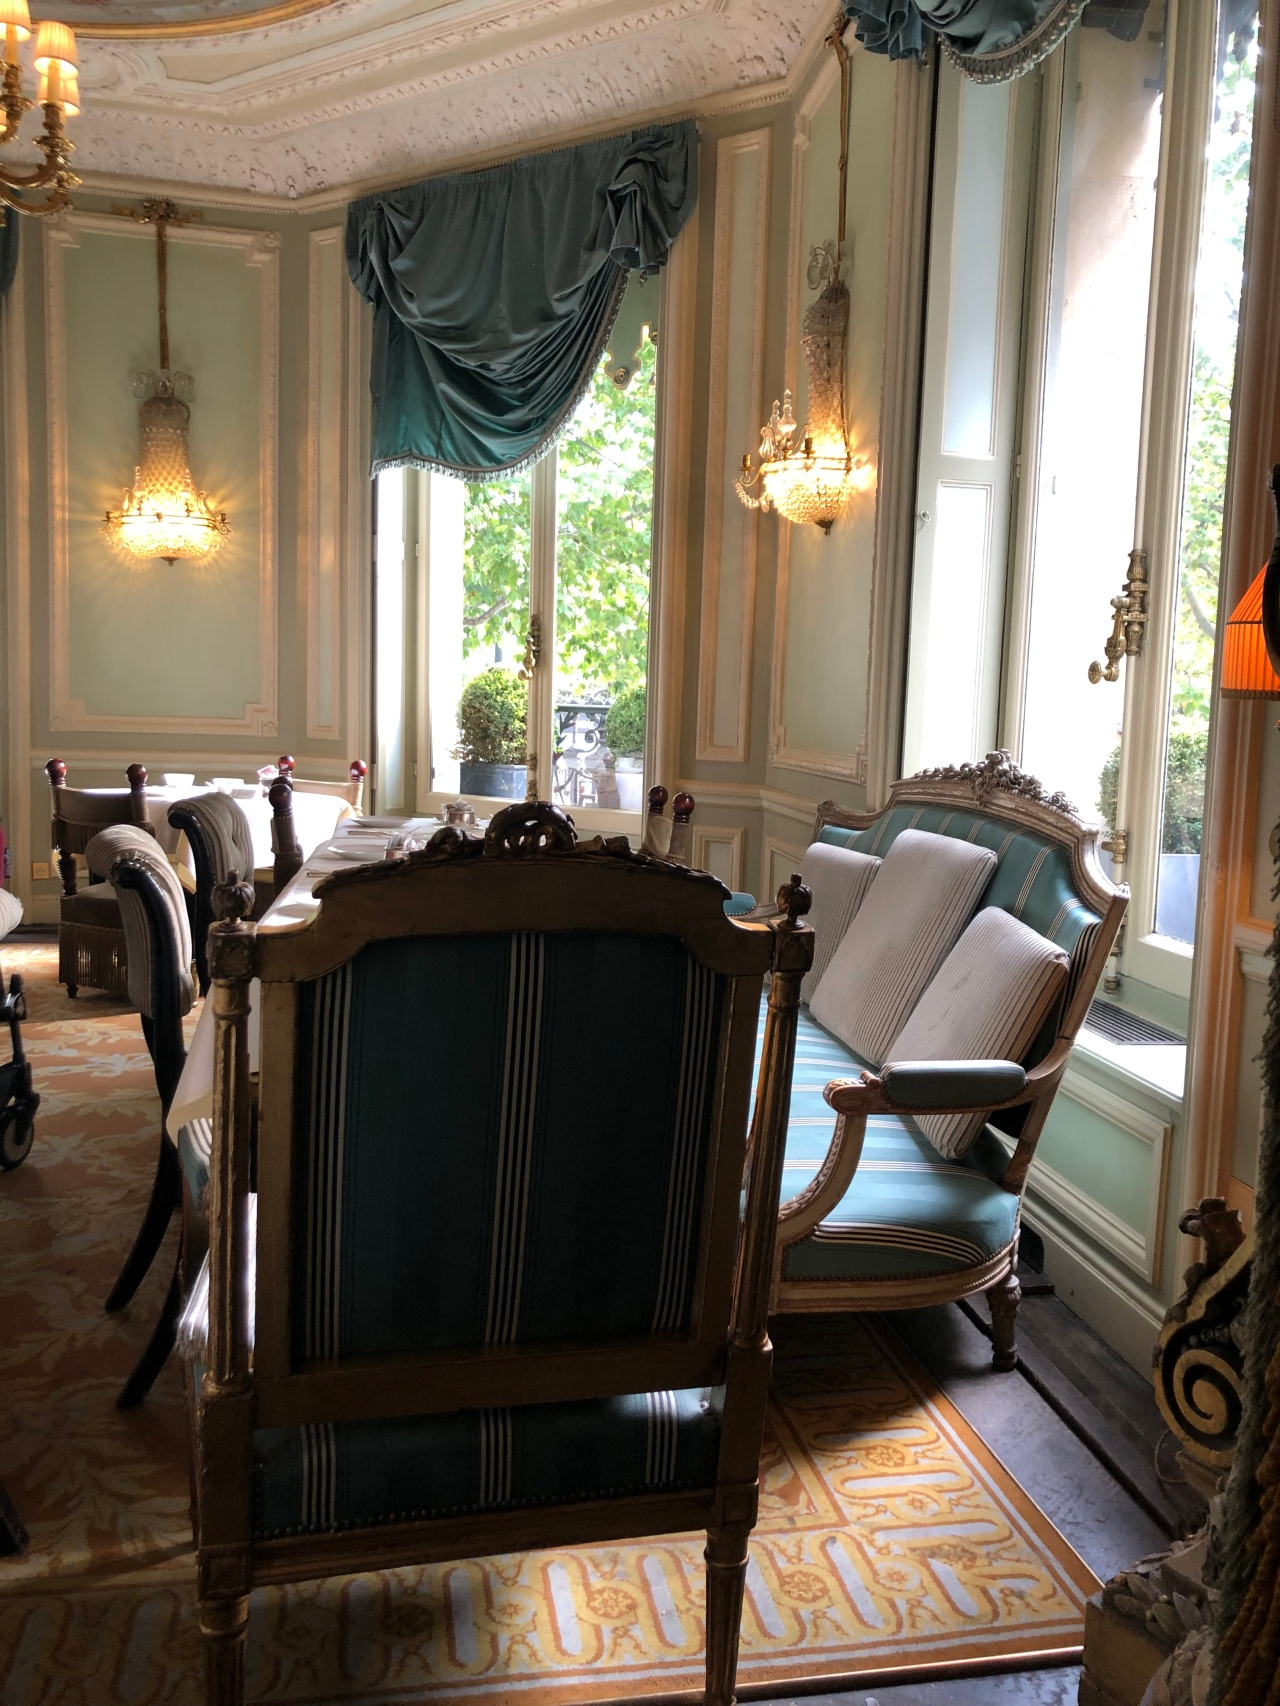 The beautiful interior of Laudree Champs Elysee